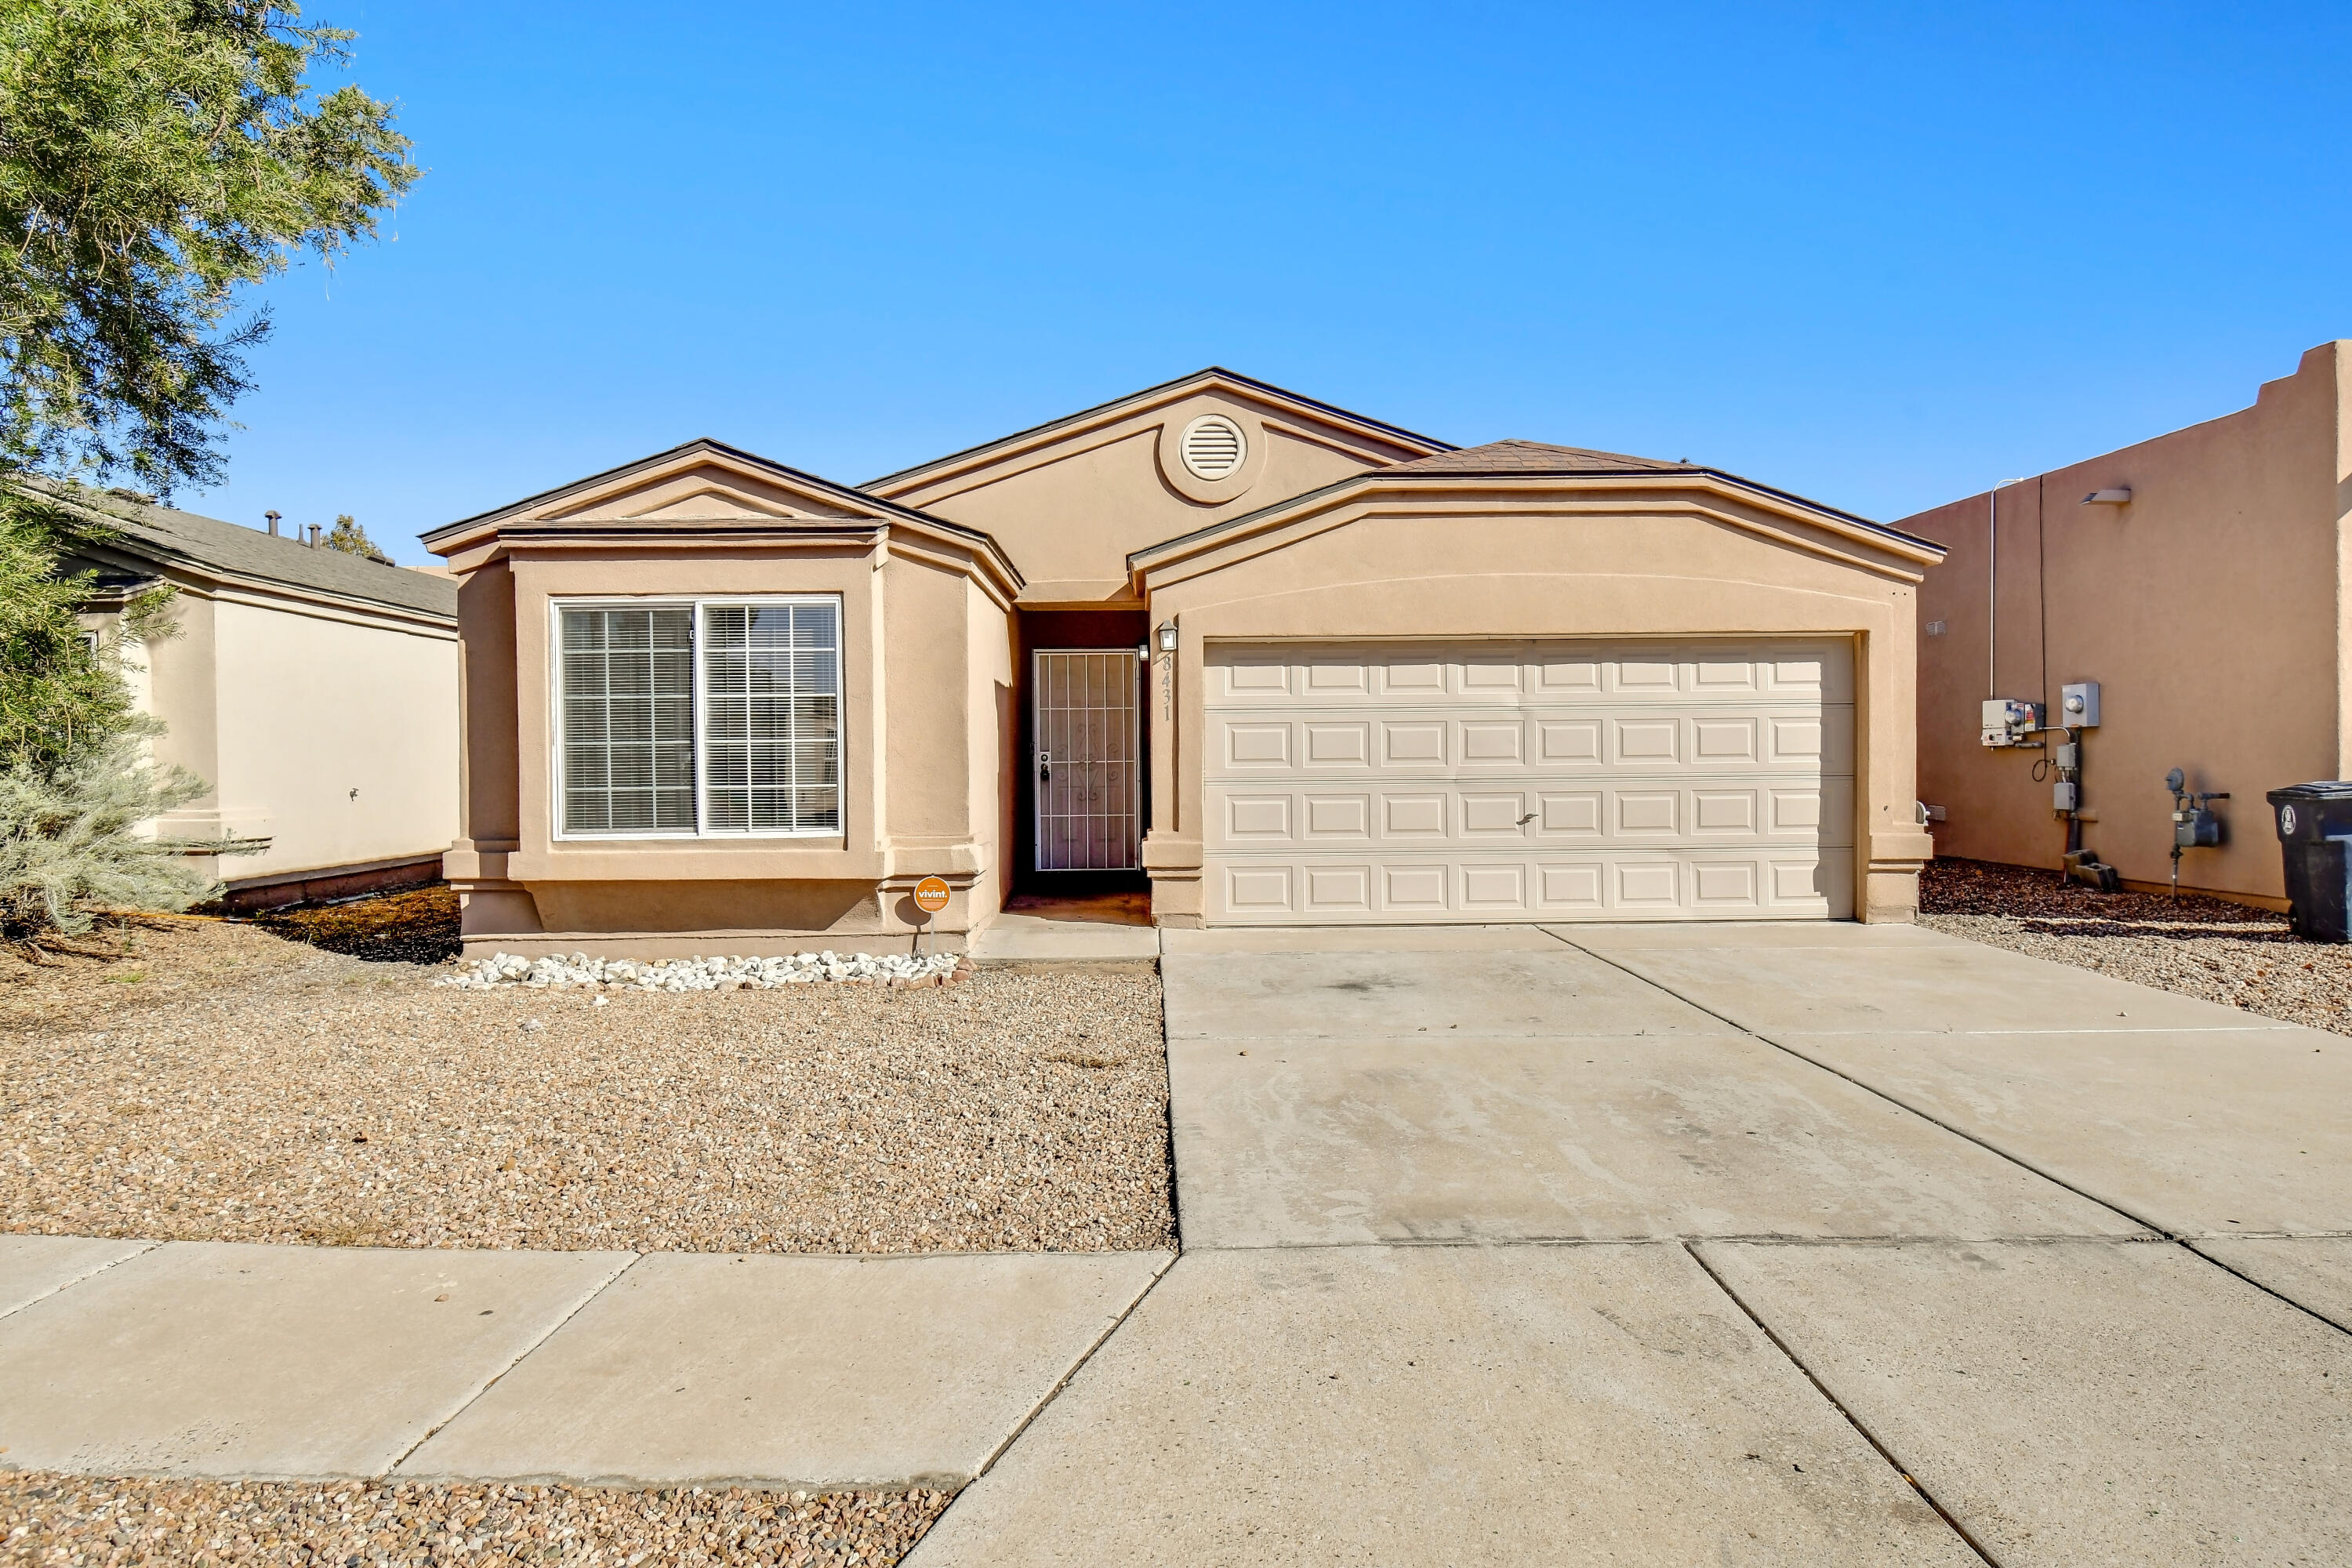 This move in ready, 1,574 sq. ft., 4 bedroom and 2 full bath, single story home sports a clean, open design and an easy maintenance, roomy backyard. Enjoy plenty of natural light and cool refrigerated air in the summer months. The split master floor plan boasts a master bedroom that incorporates a walk-in closet and an enormous garden tub. Stay cozy in the winter and delight in the calm ambience of the living room's gas fireplace. The kitchen provides good countertop space and cabinetry - ready for entertaining friends or family for dinner. The yards are nicely rocked and the backyard has a flagstone patio area. This sparkling home has much to offer and plenty of opportunity. Make an appointment to see it today!